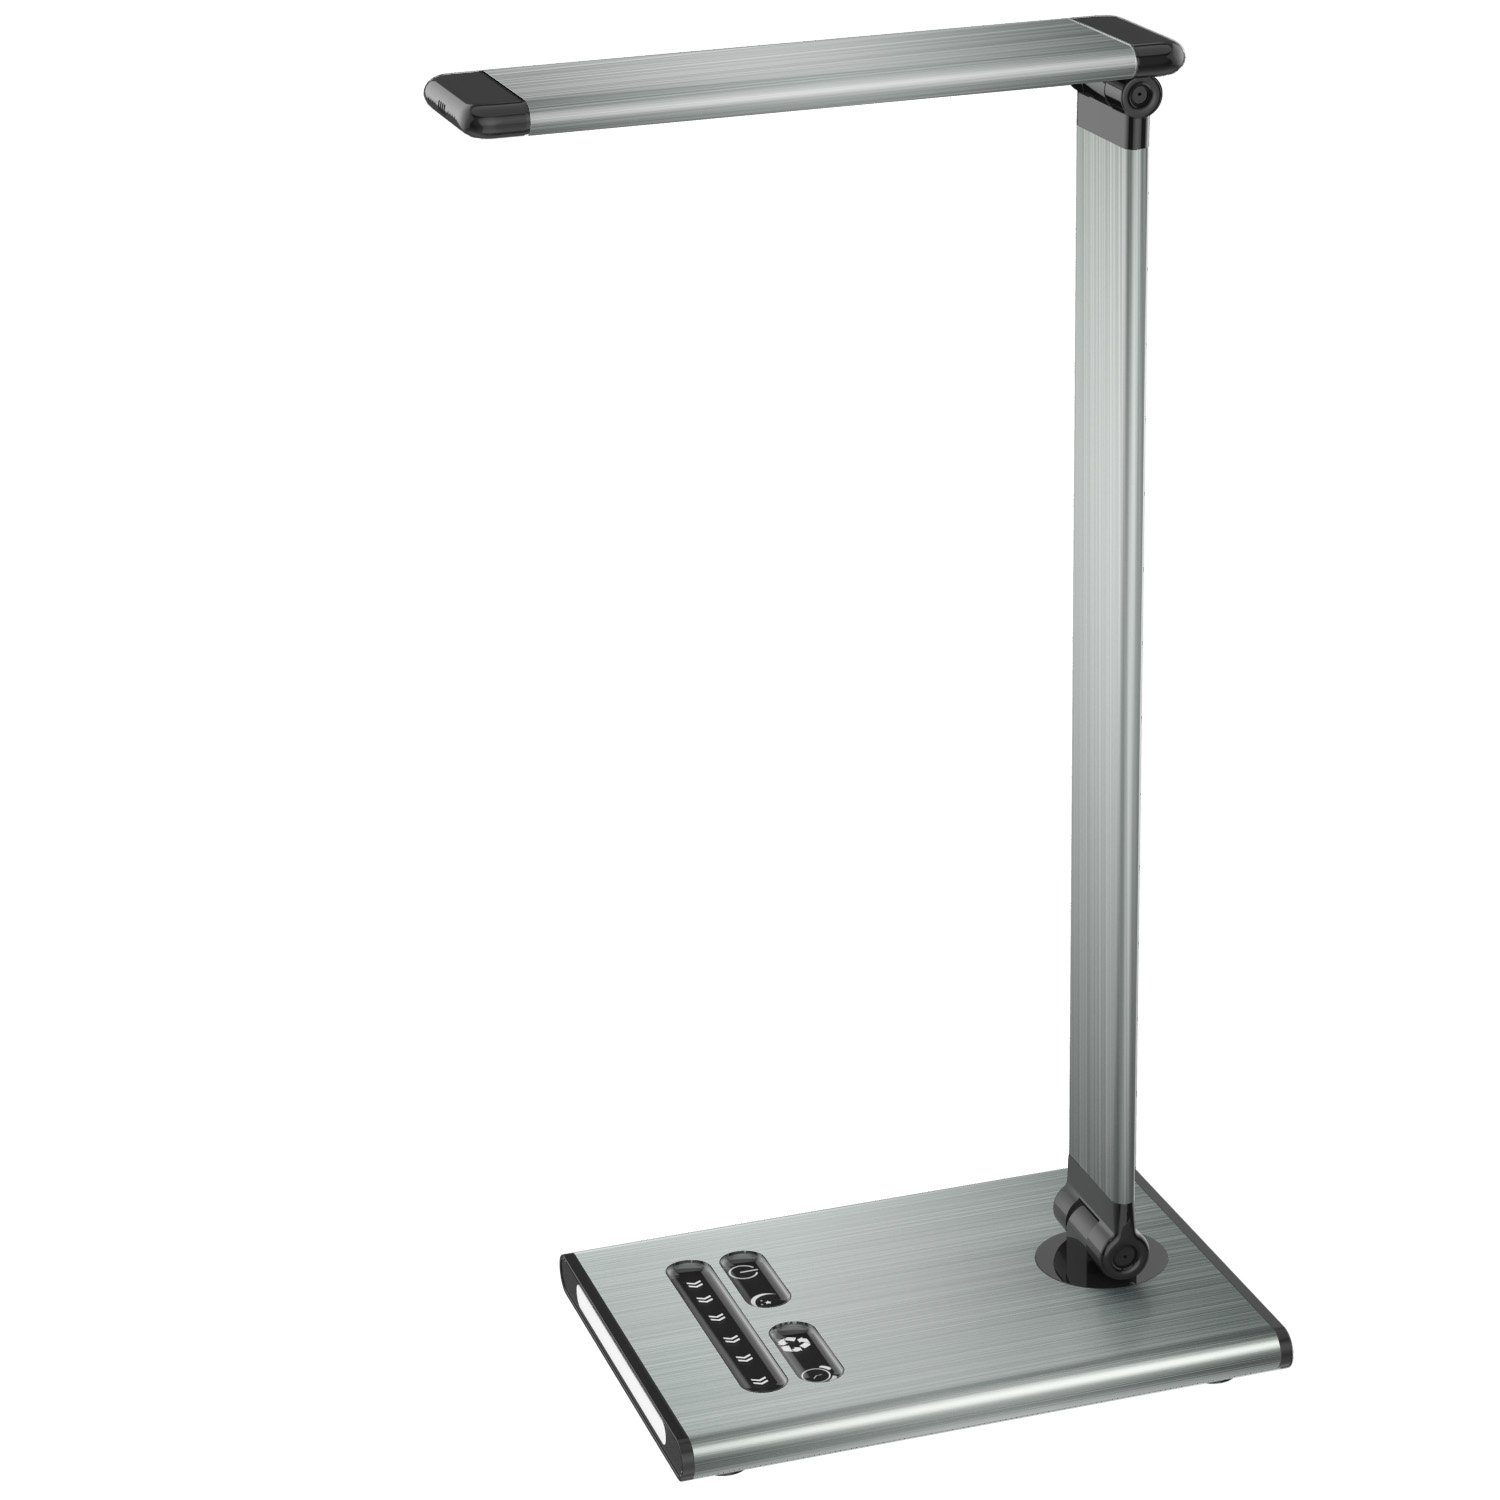 MoKo Dimmable LED Desk Lamp, 10W Touch Control Adjustable Table Lamp, Built-in Nightlight + USB Charging Port, Rugged & Full Aluminum Alloy Body, 6-Level Brightness, 5 Lighting Modes - Space Gray